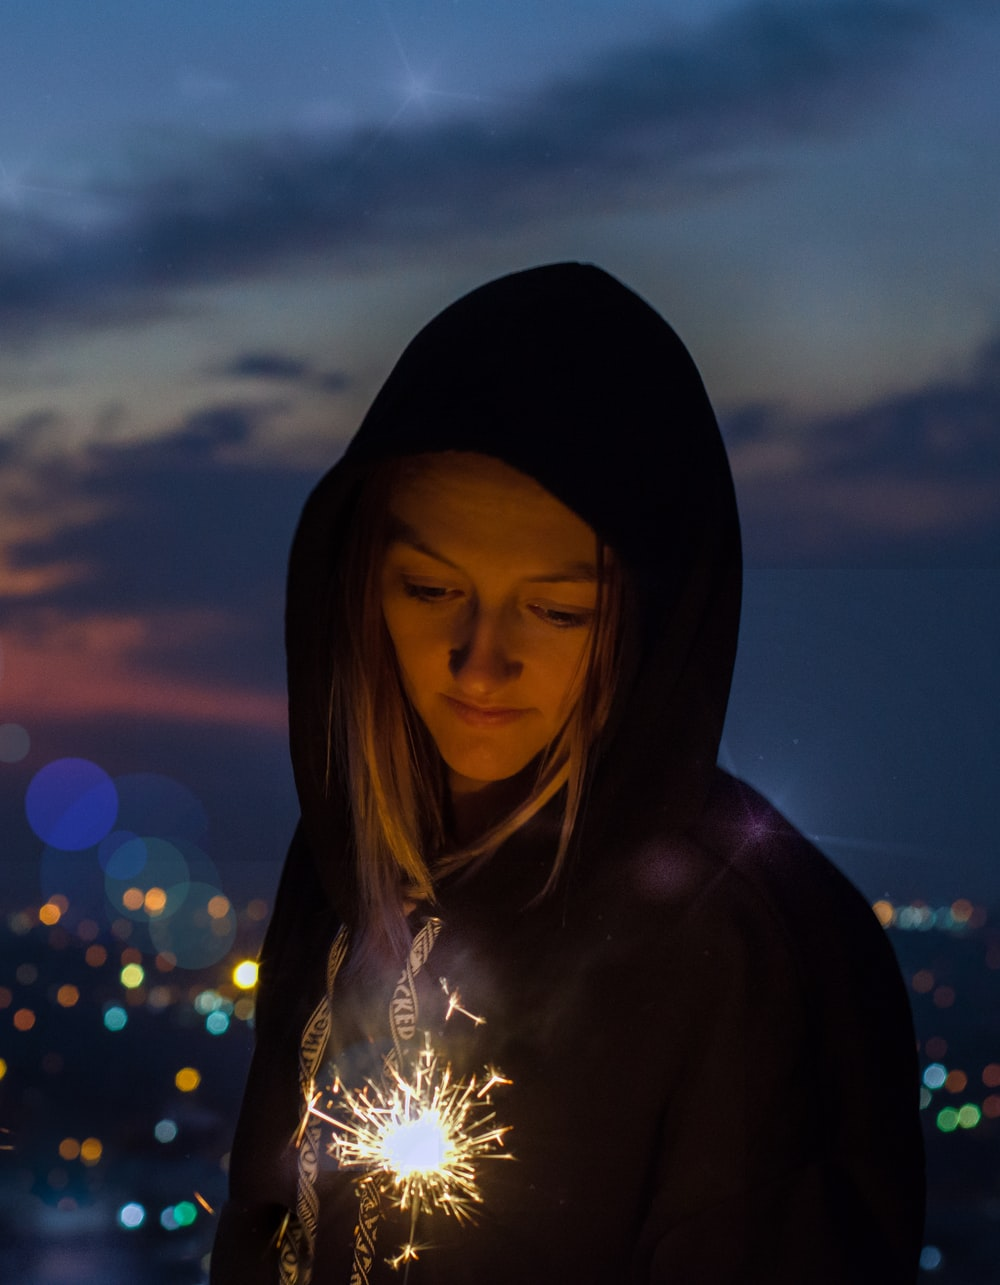 portrait of woman holding fireworks